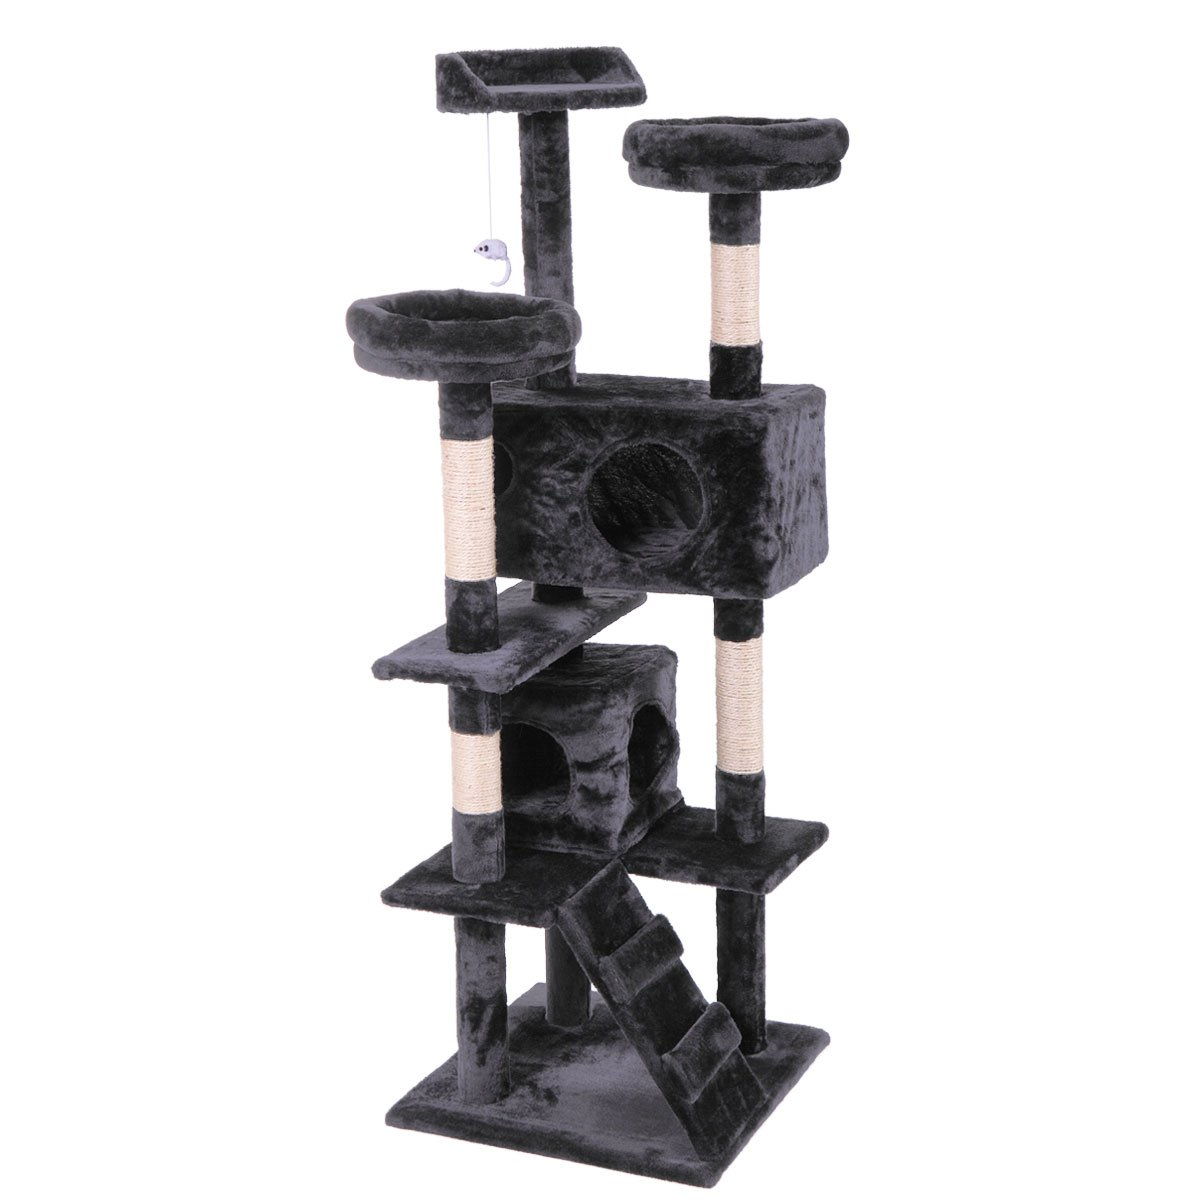 Fabulous Lazymoon 60 Black Cat Activity Tree Tower Condo Furniture Scratching Post Pet Kitty Play House Download Free Architecture Designs Scobabritishbridgeorg